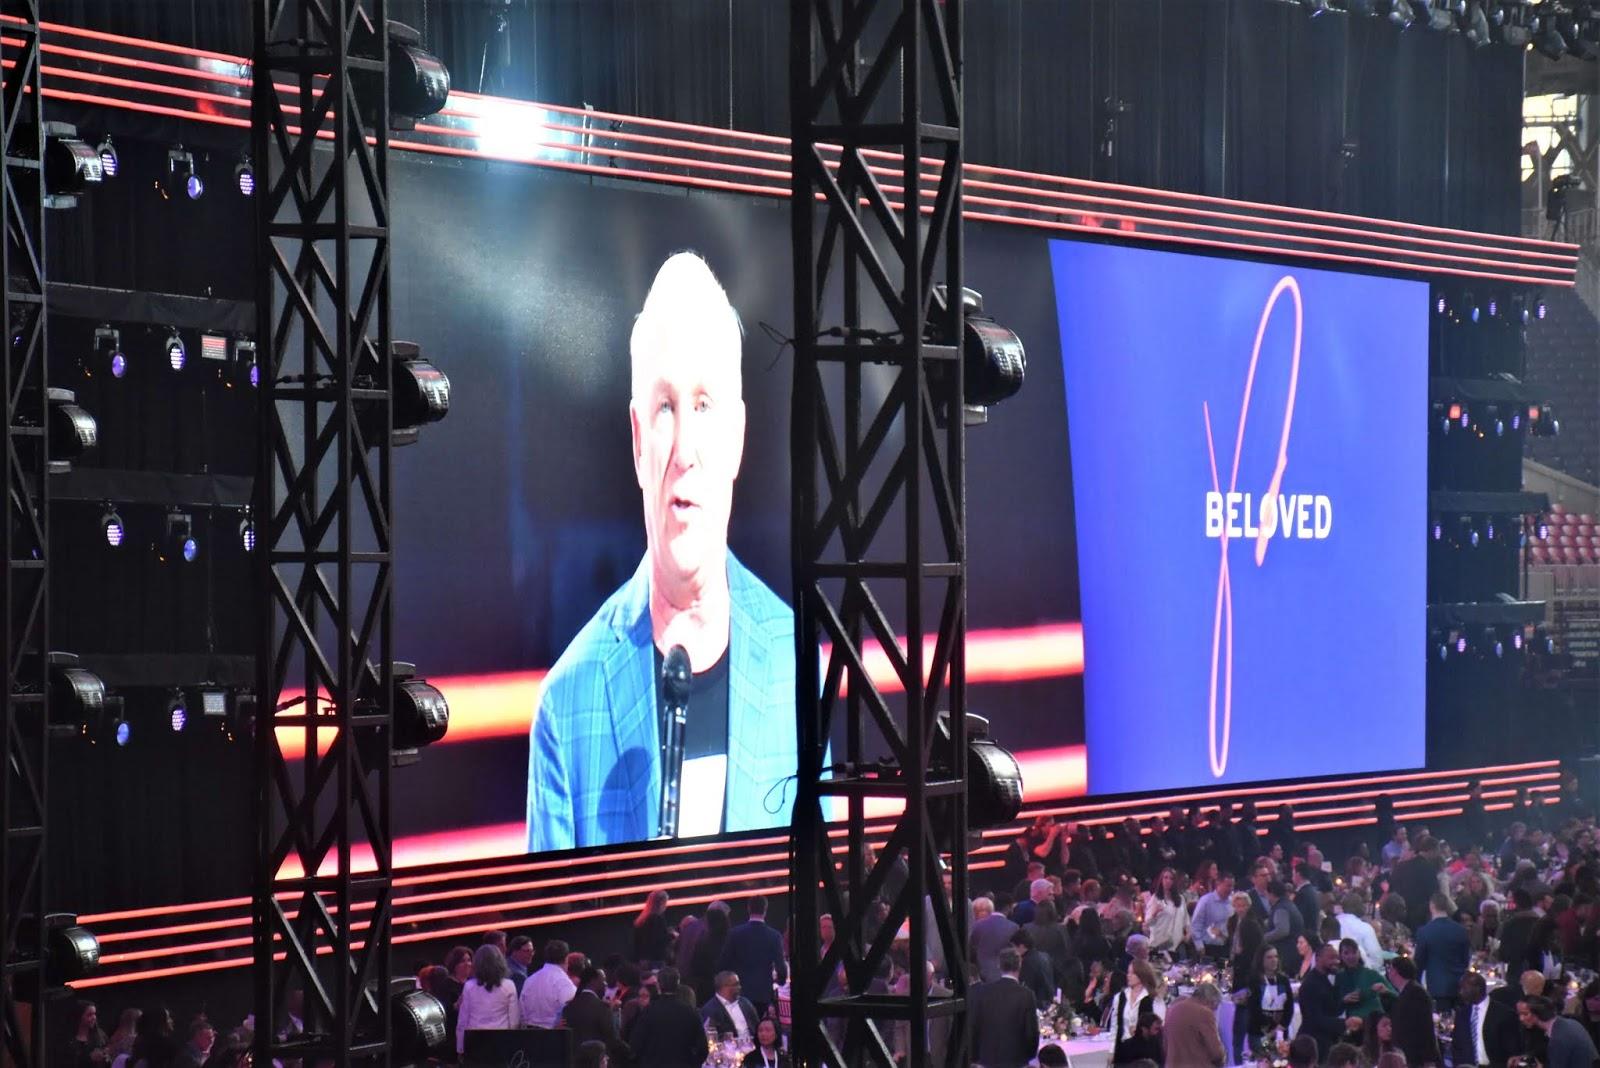 Beloved Benefit at Mercedes Benz Stadium with Dan Cathy